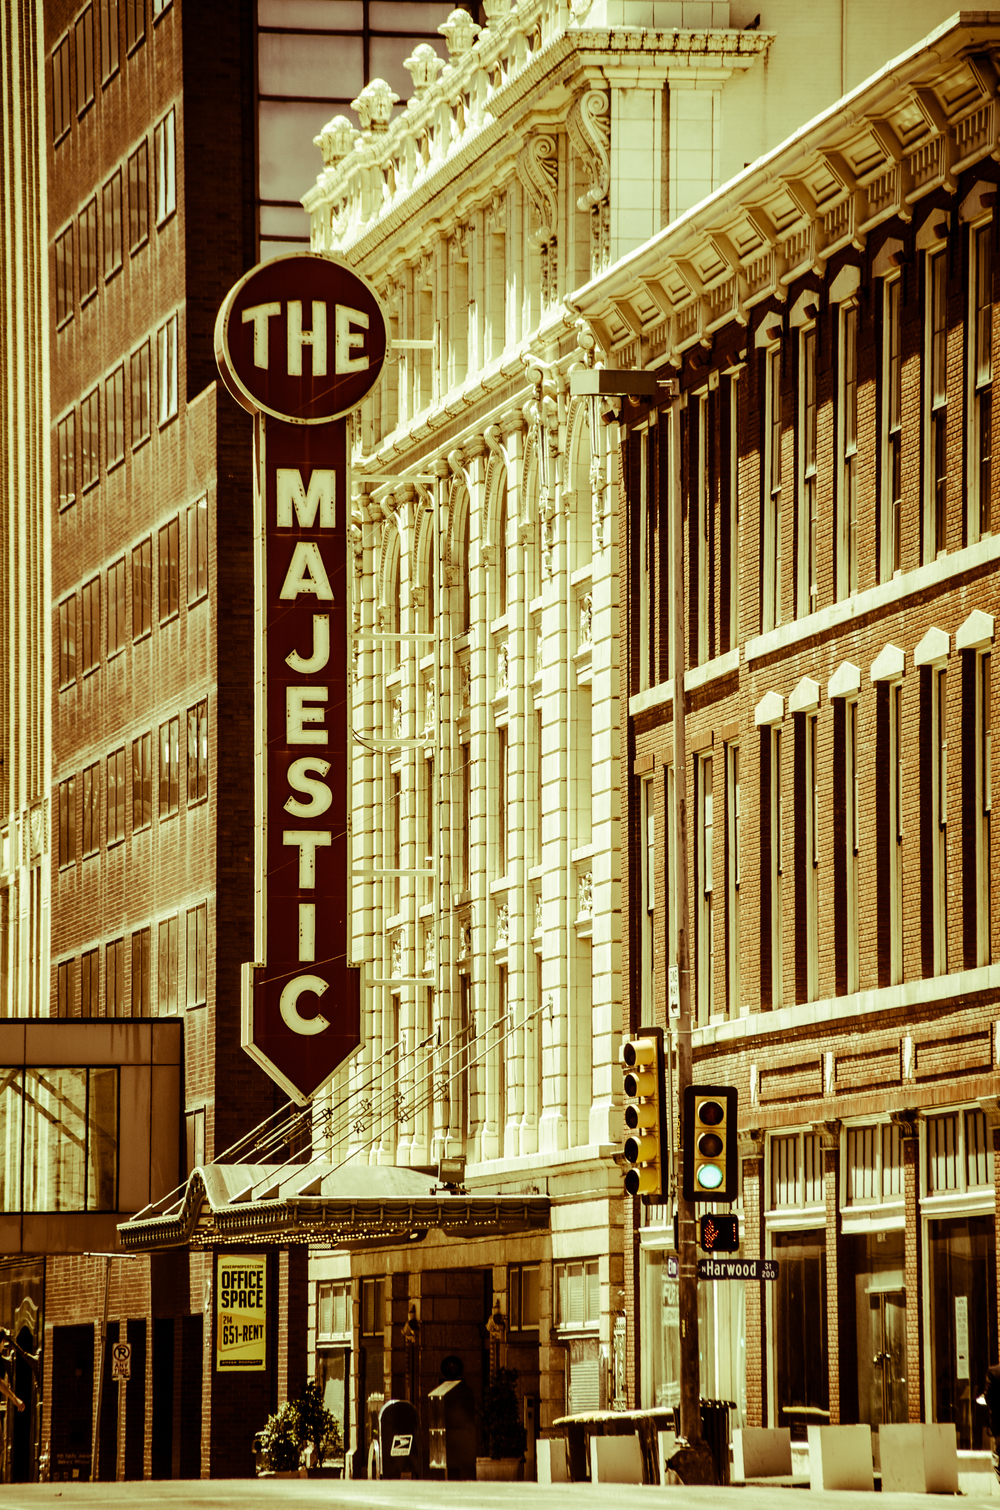 The Majestic Marquee